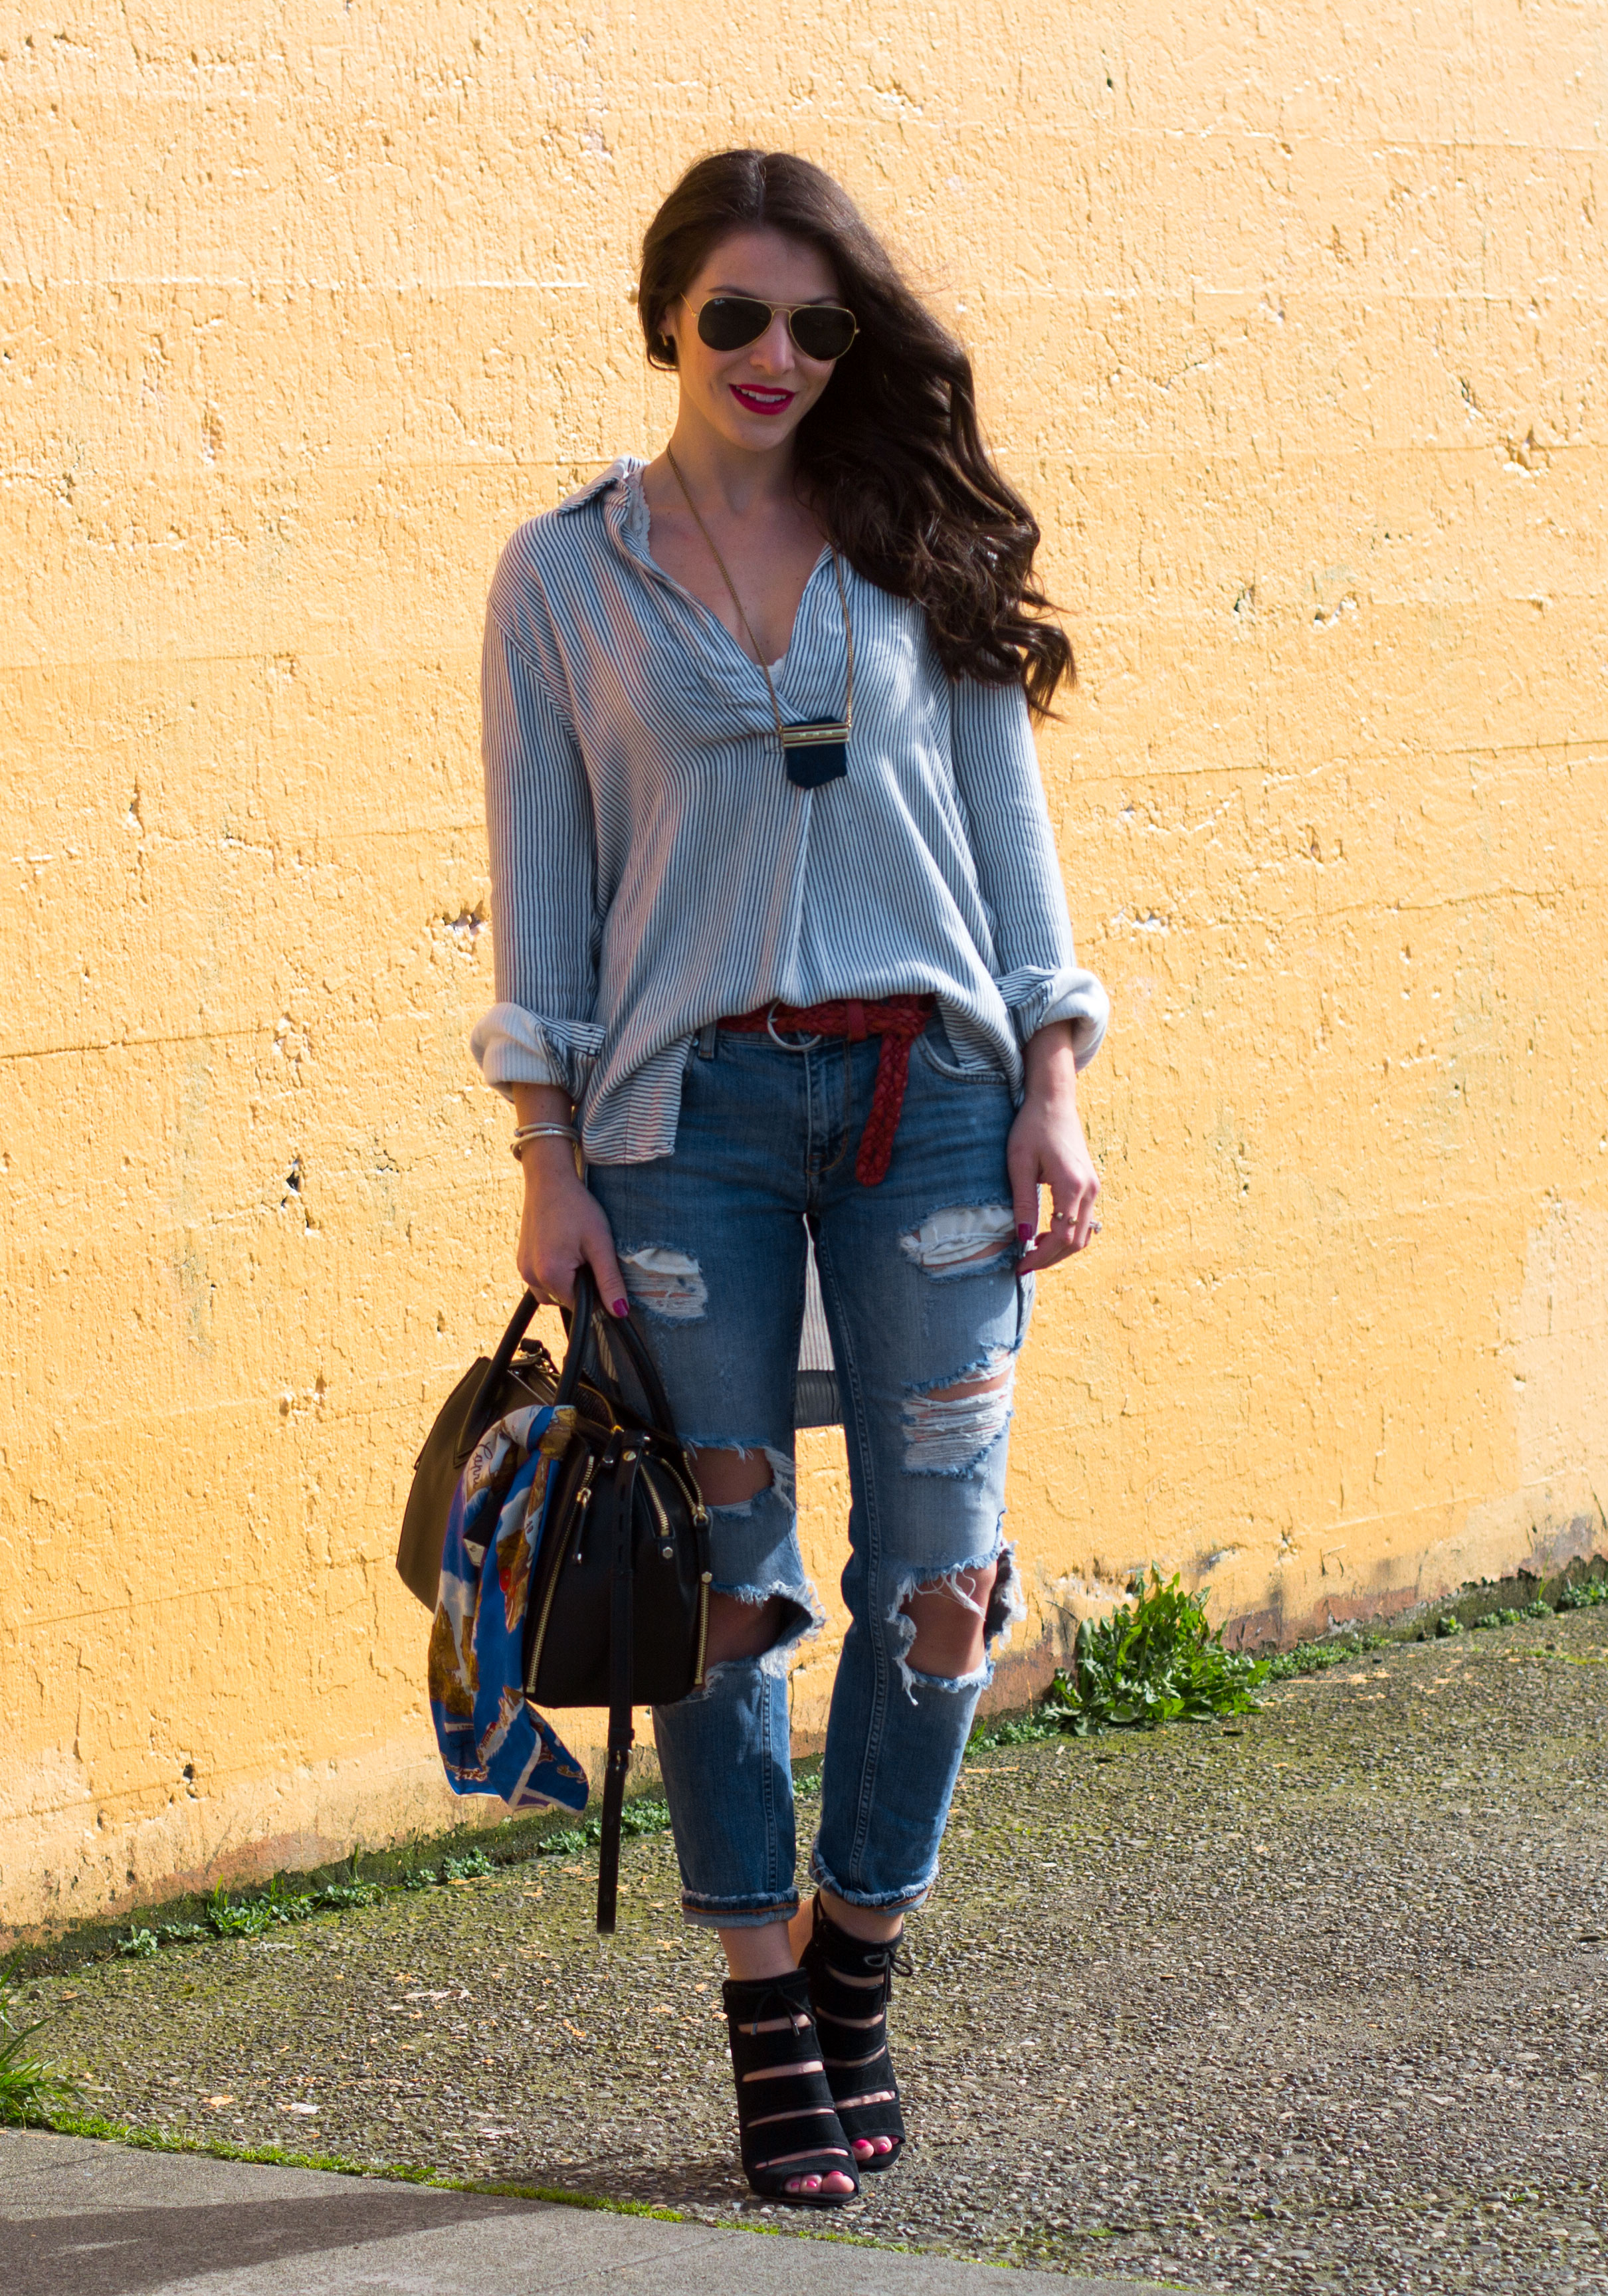 Free People Striped On The Road Shirt, Zara Destroyed Denim, Seychelles Caged Sandals, Rebecca Minkoff Avery, Lucky Brand Lapis Necklace, Canadian Tuxedo, All Denim Outfit